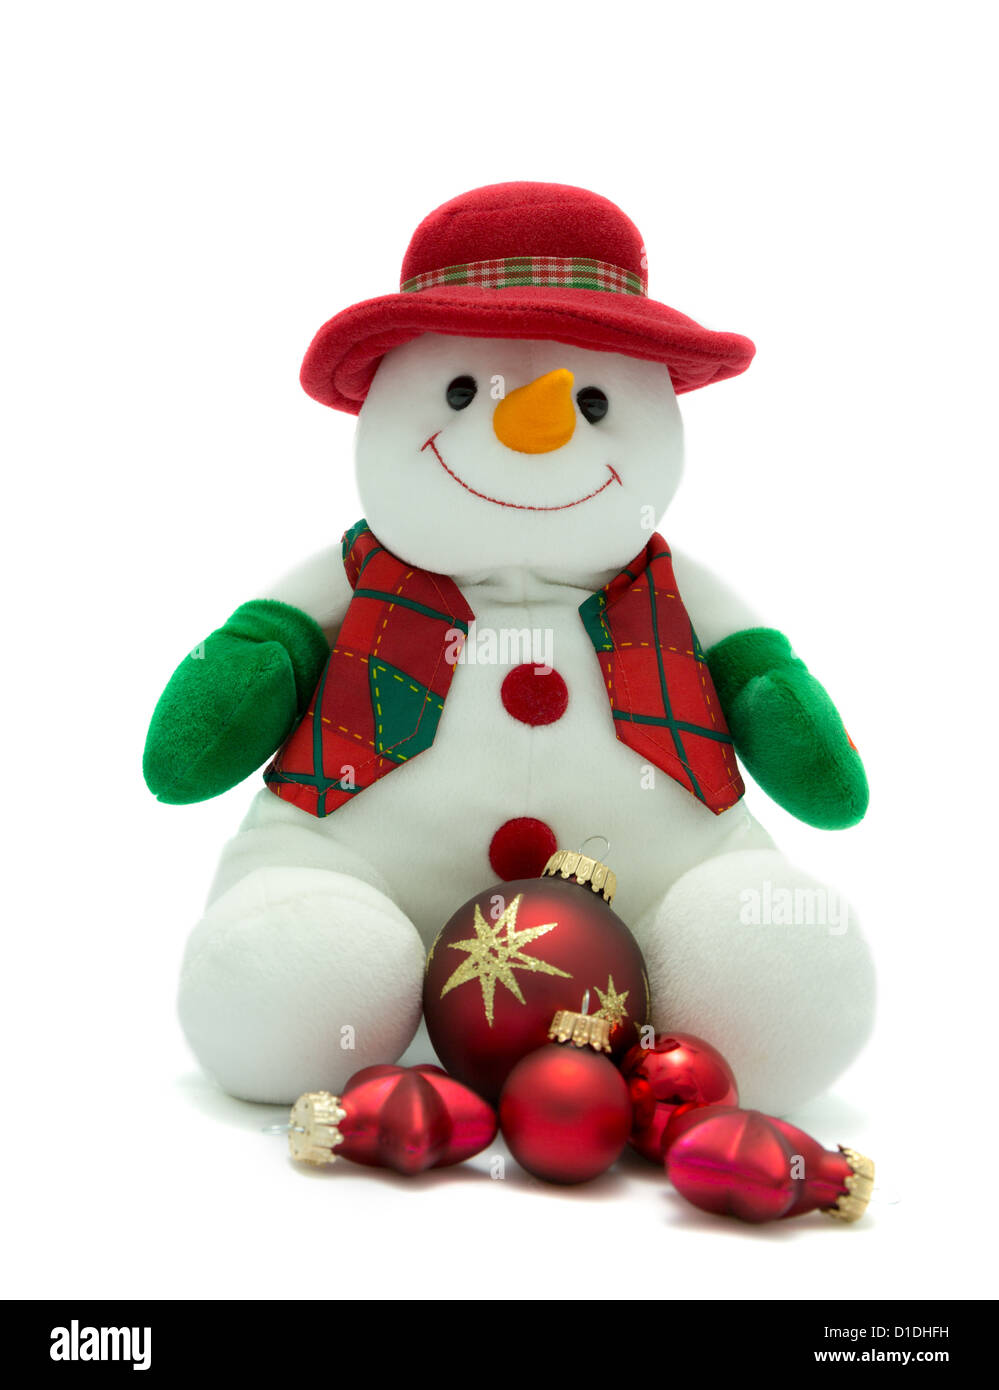 Christmas Snowman with red festive baubles - Stock Image